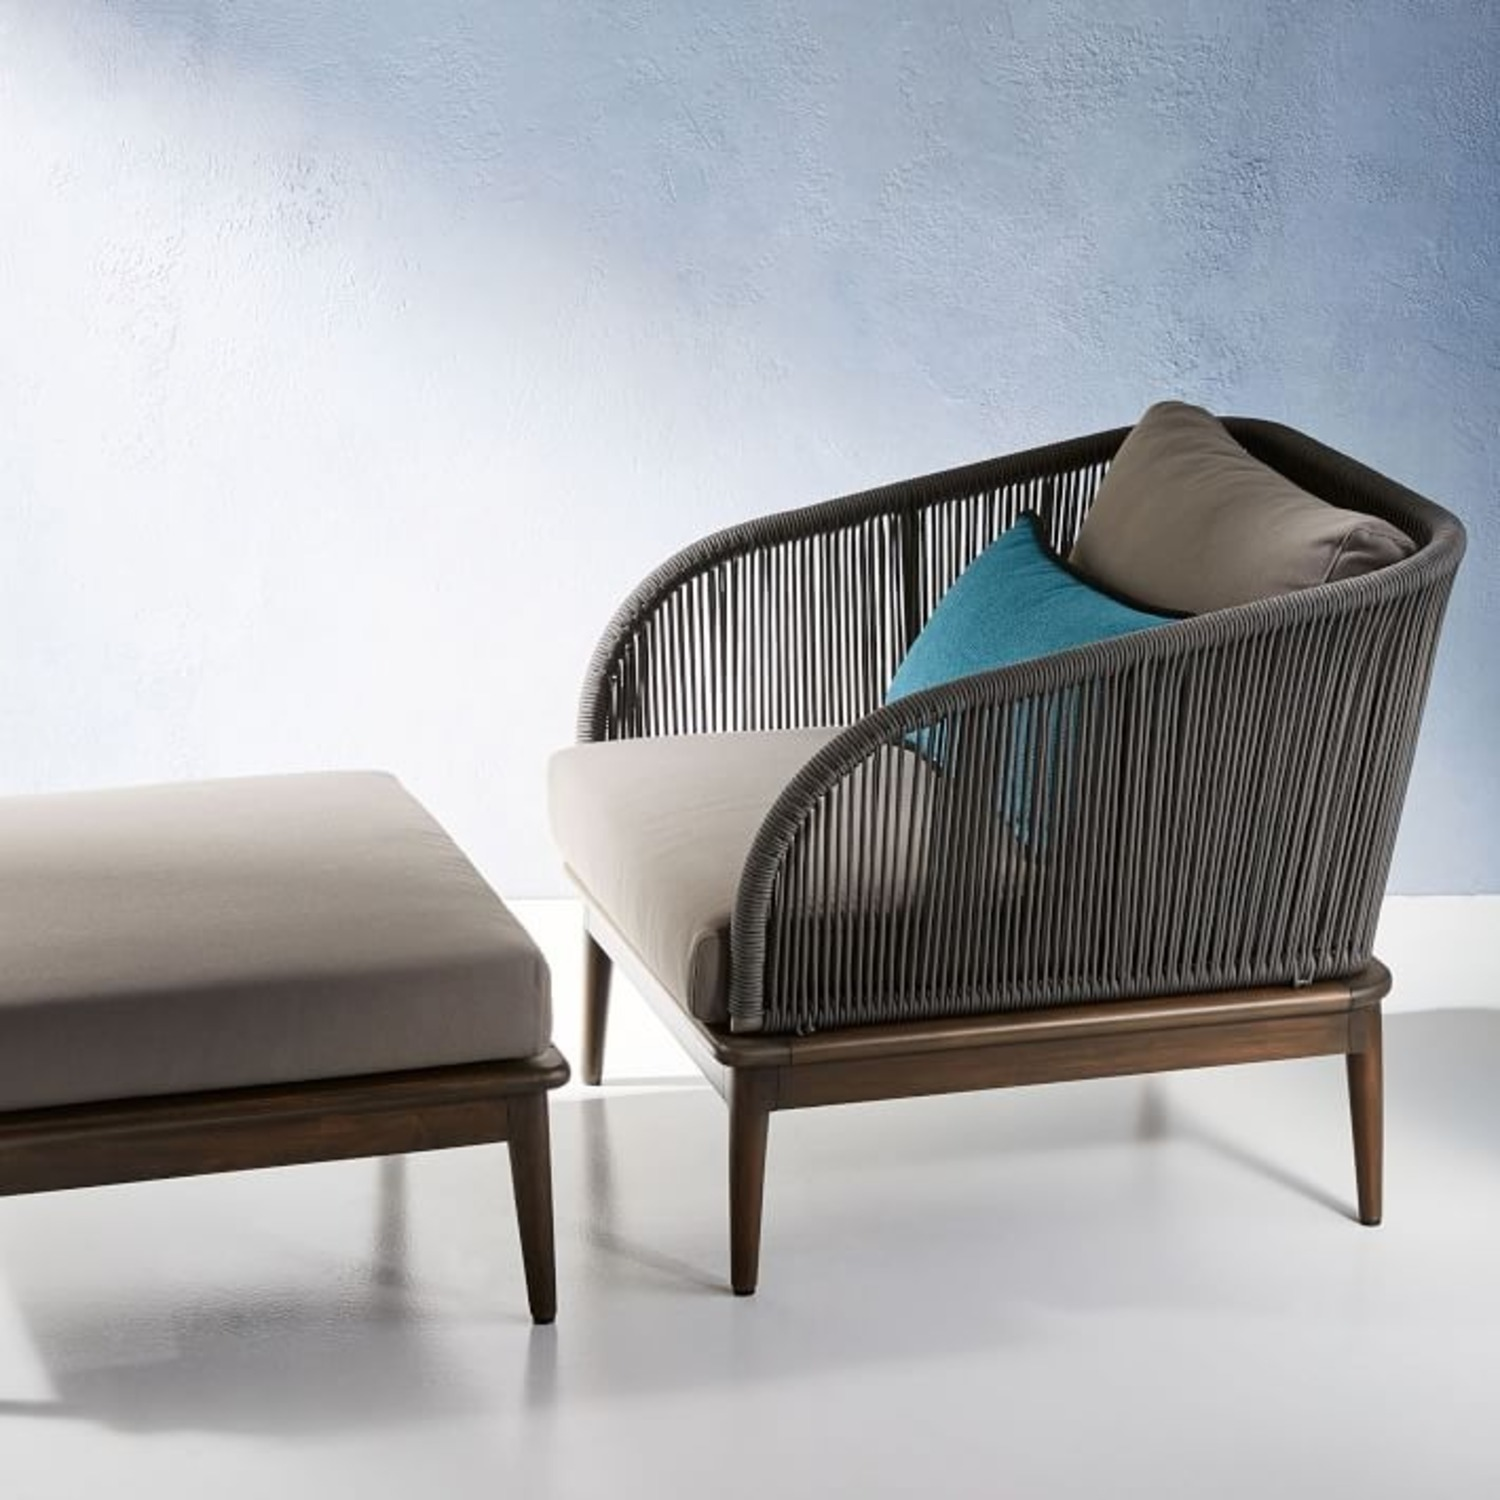 West Elm Corded Weave Outdoor Lounge Chair - image-1